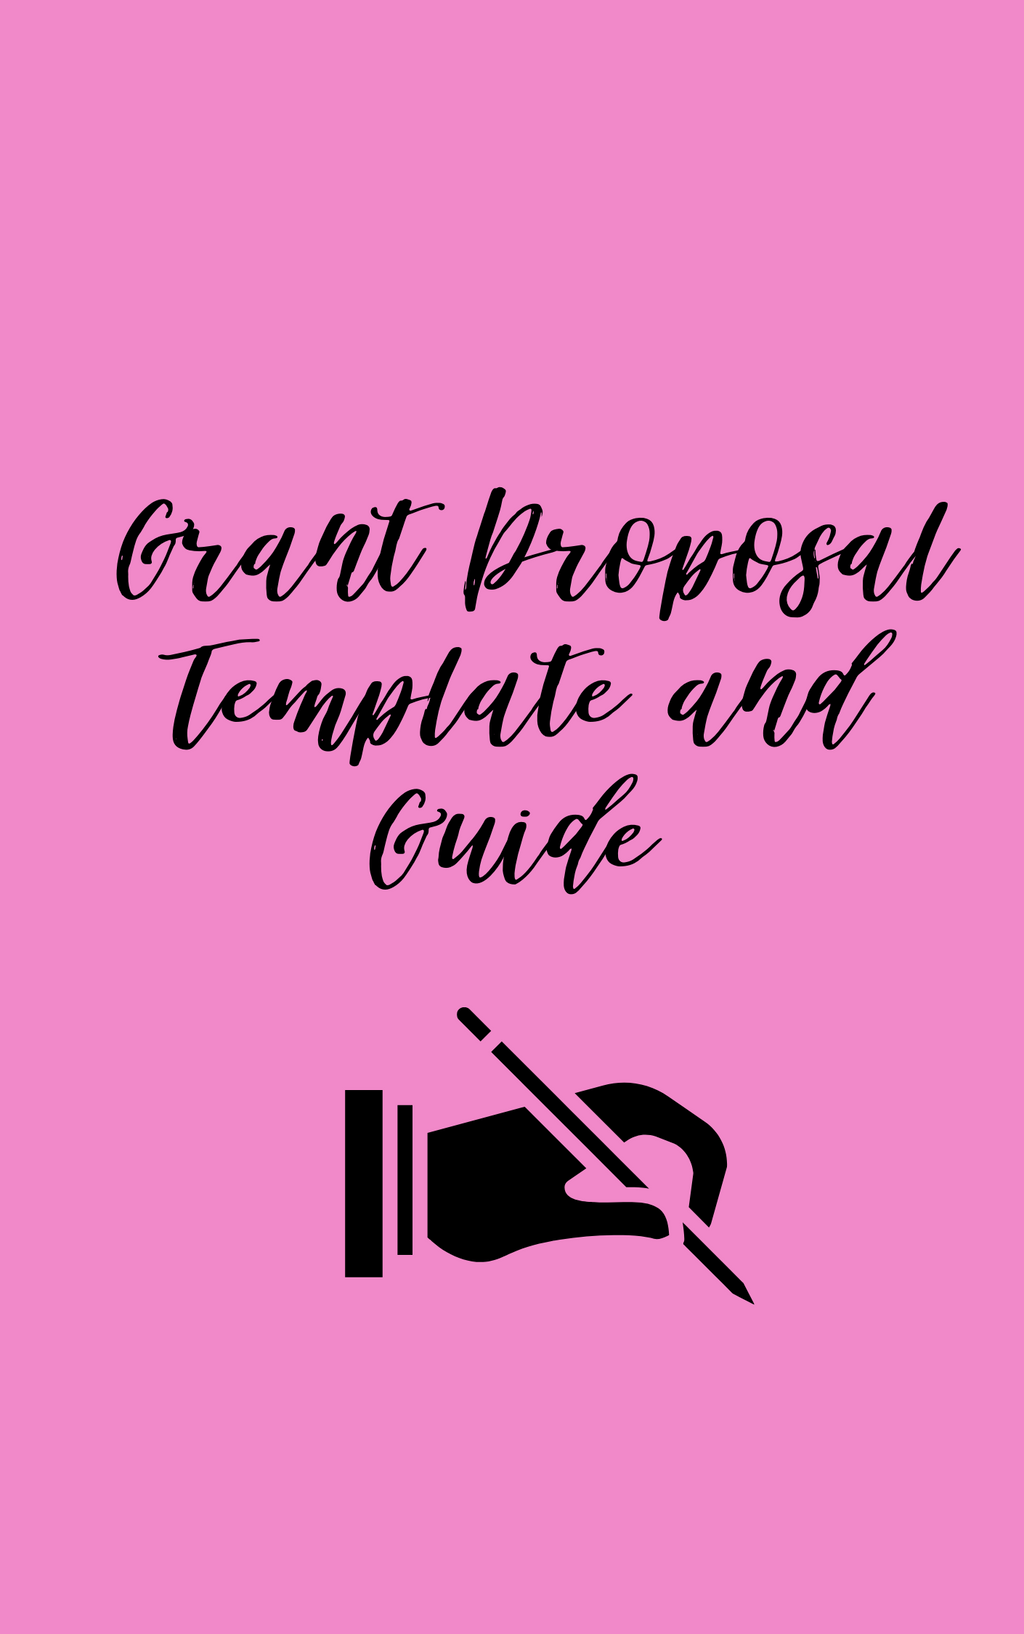 Grant Proposal Template - Ebony's Beauty Hair and Skin Care LLC